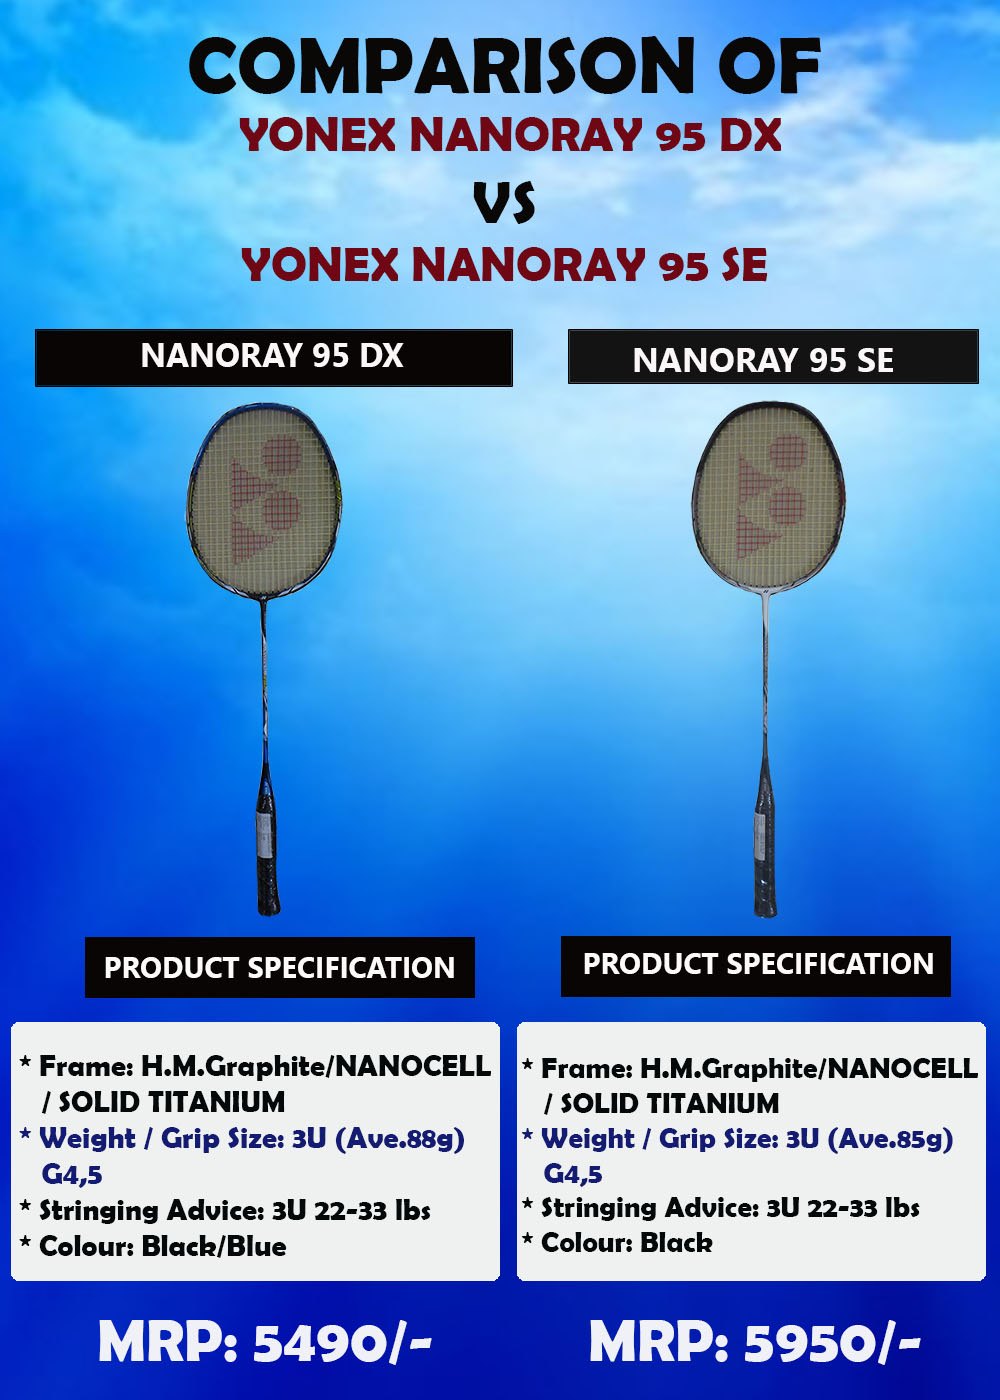 COMPARISON OF YONEX NANORAY 95 DX VS YONEX NANORAY 95 SE_2